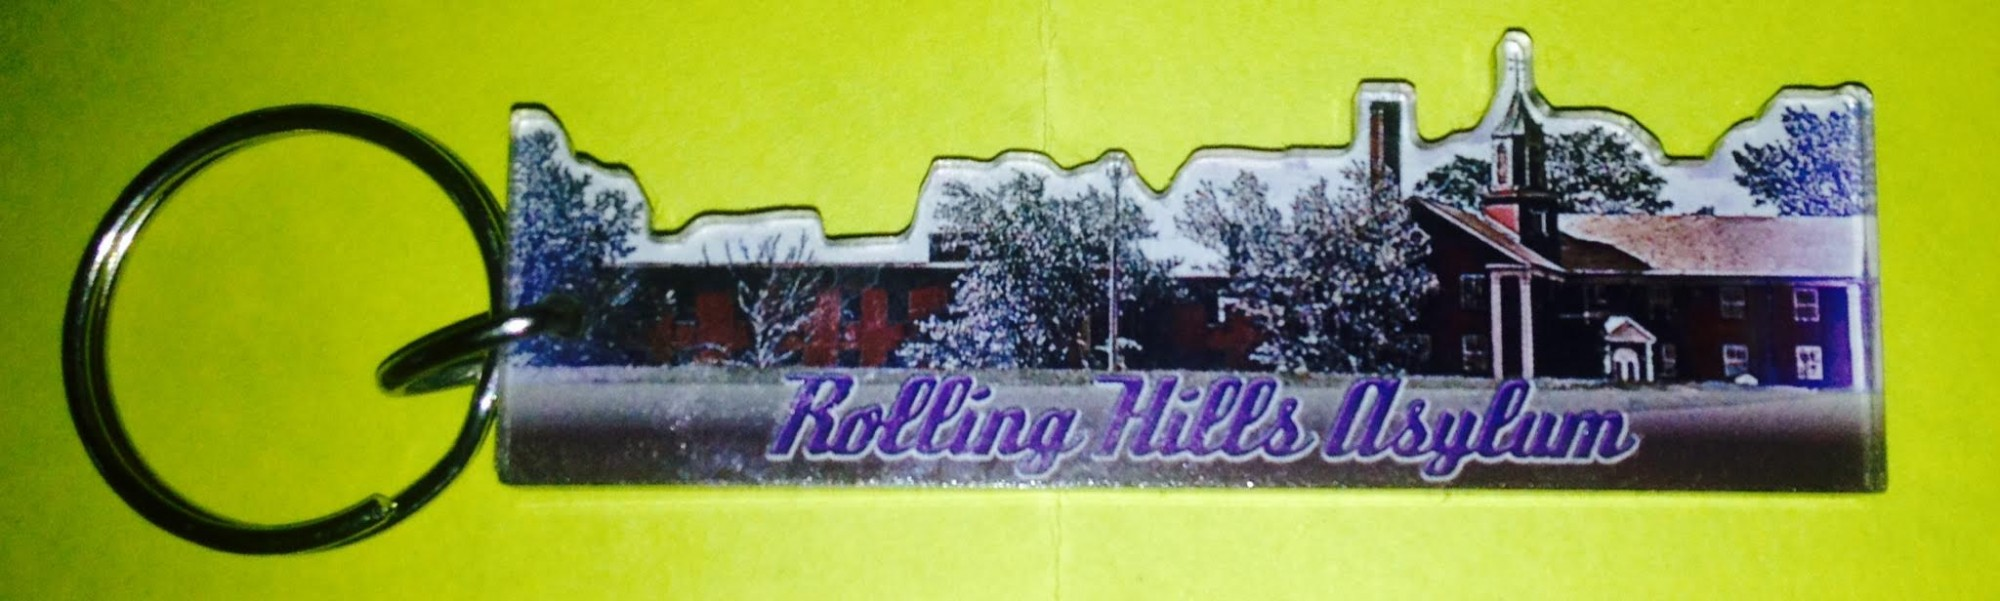 Rolling Hills Double Sided Key Chain